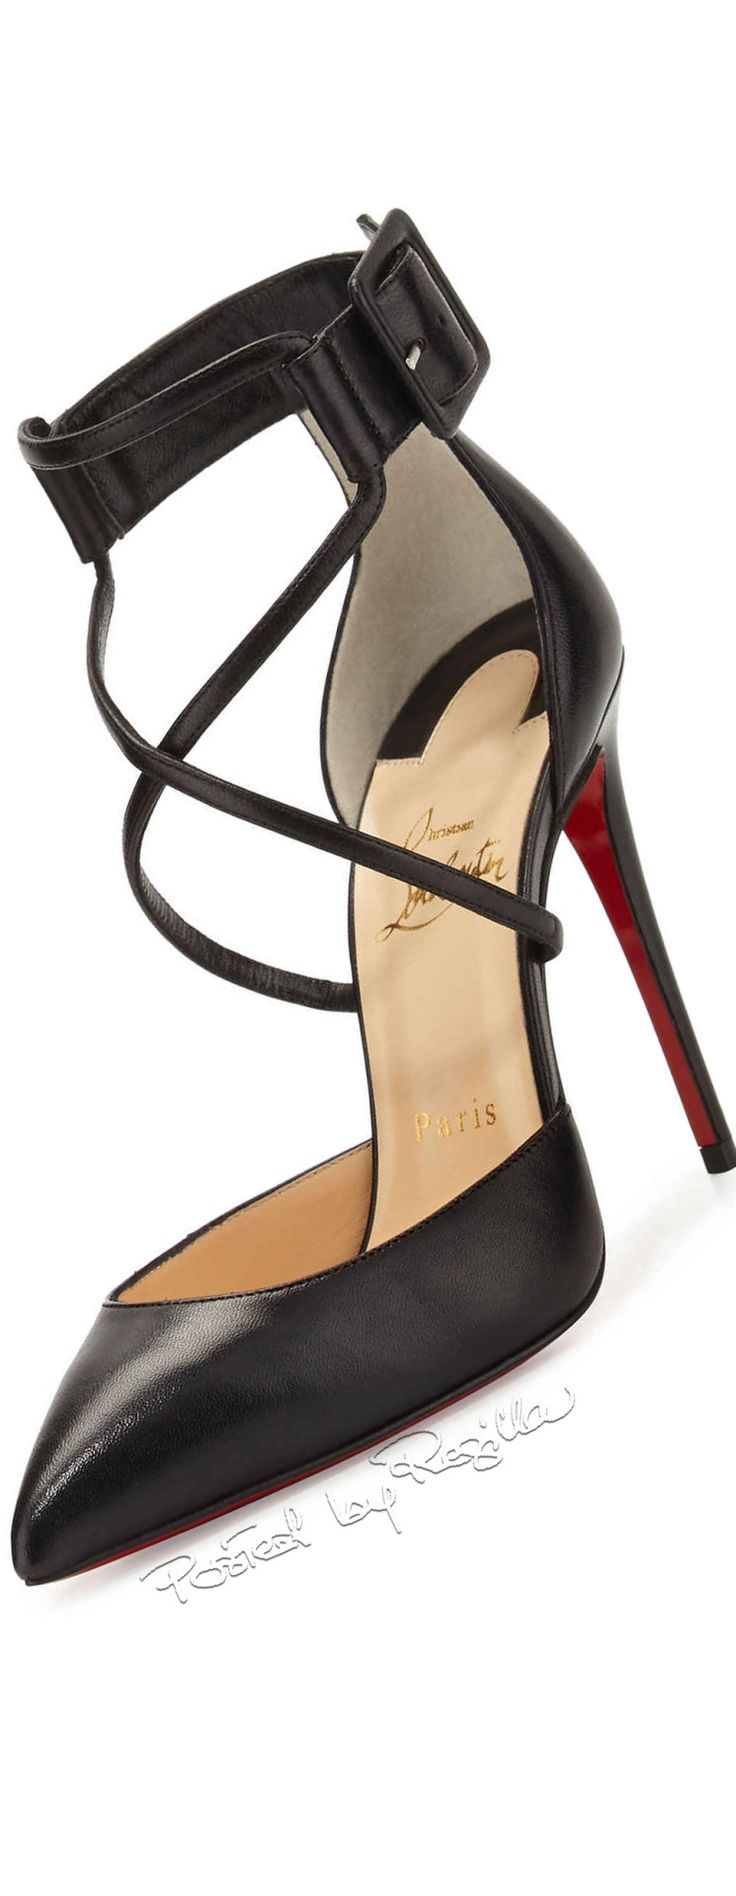 Find this Pin and more on Shoes - Christian Louboutin.